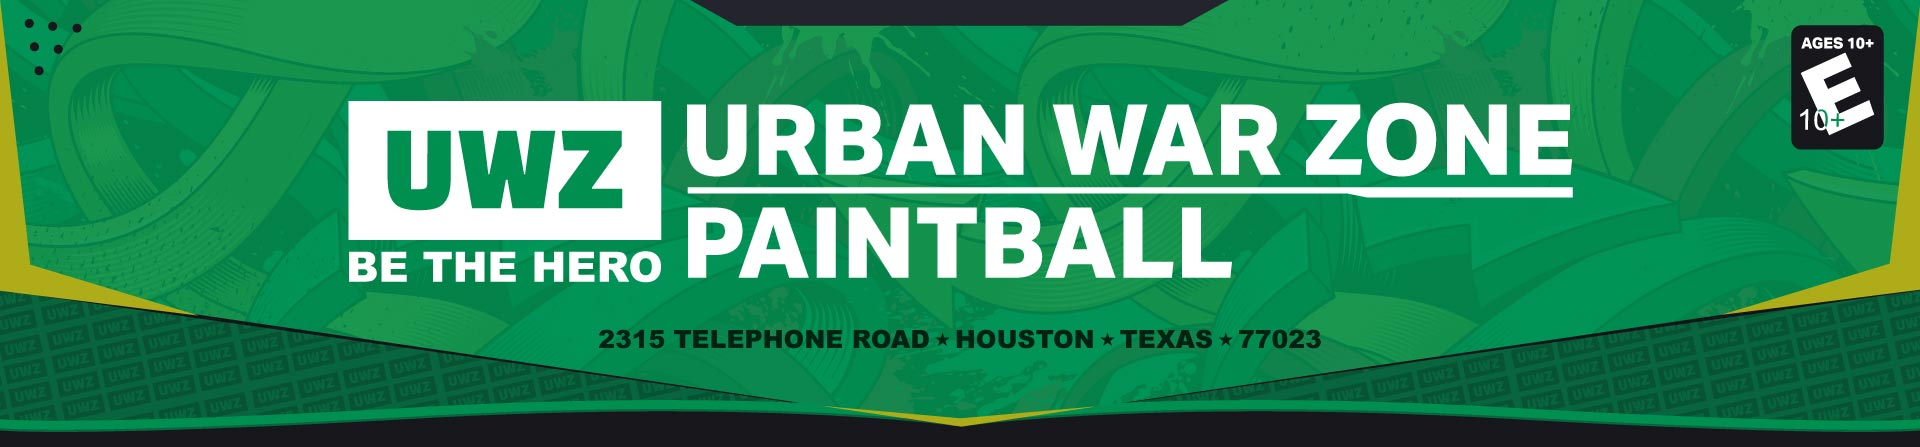 Logo for Urban War Zone Paintball in Houston, Tx